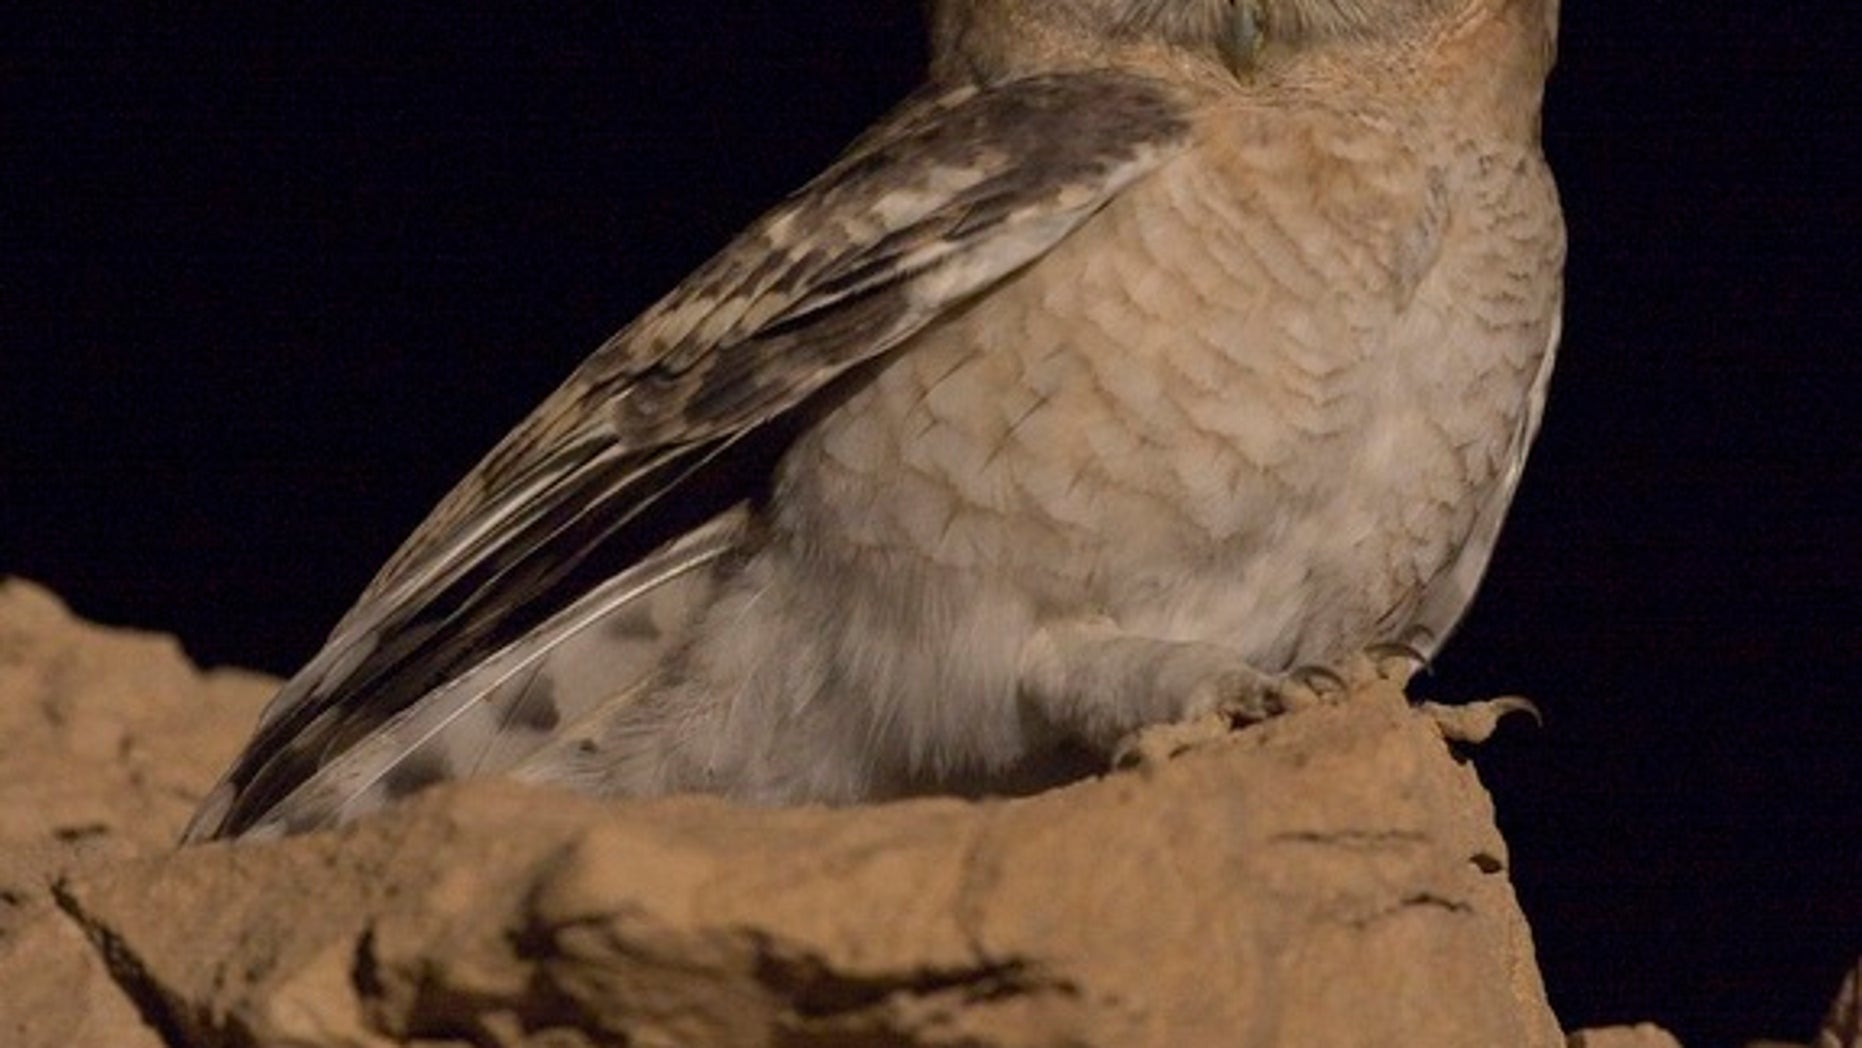 The tawny desert owl (Strix hadorami), once mistaken for another species of owl, lives in Middle Eastern countries, such as Israel, Egypt and Jordan.